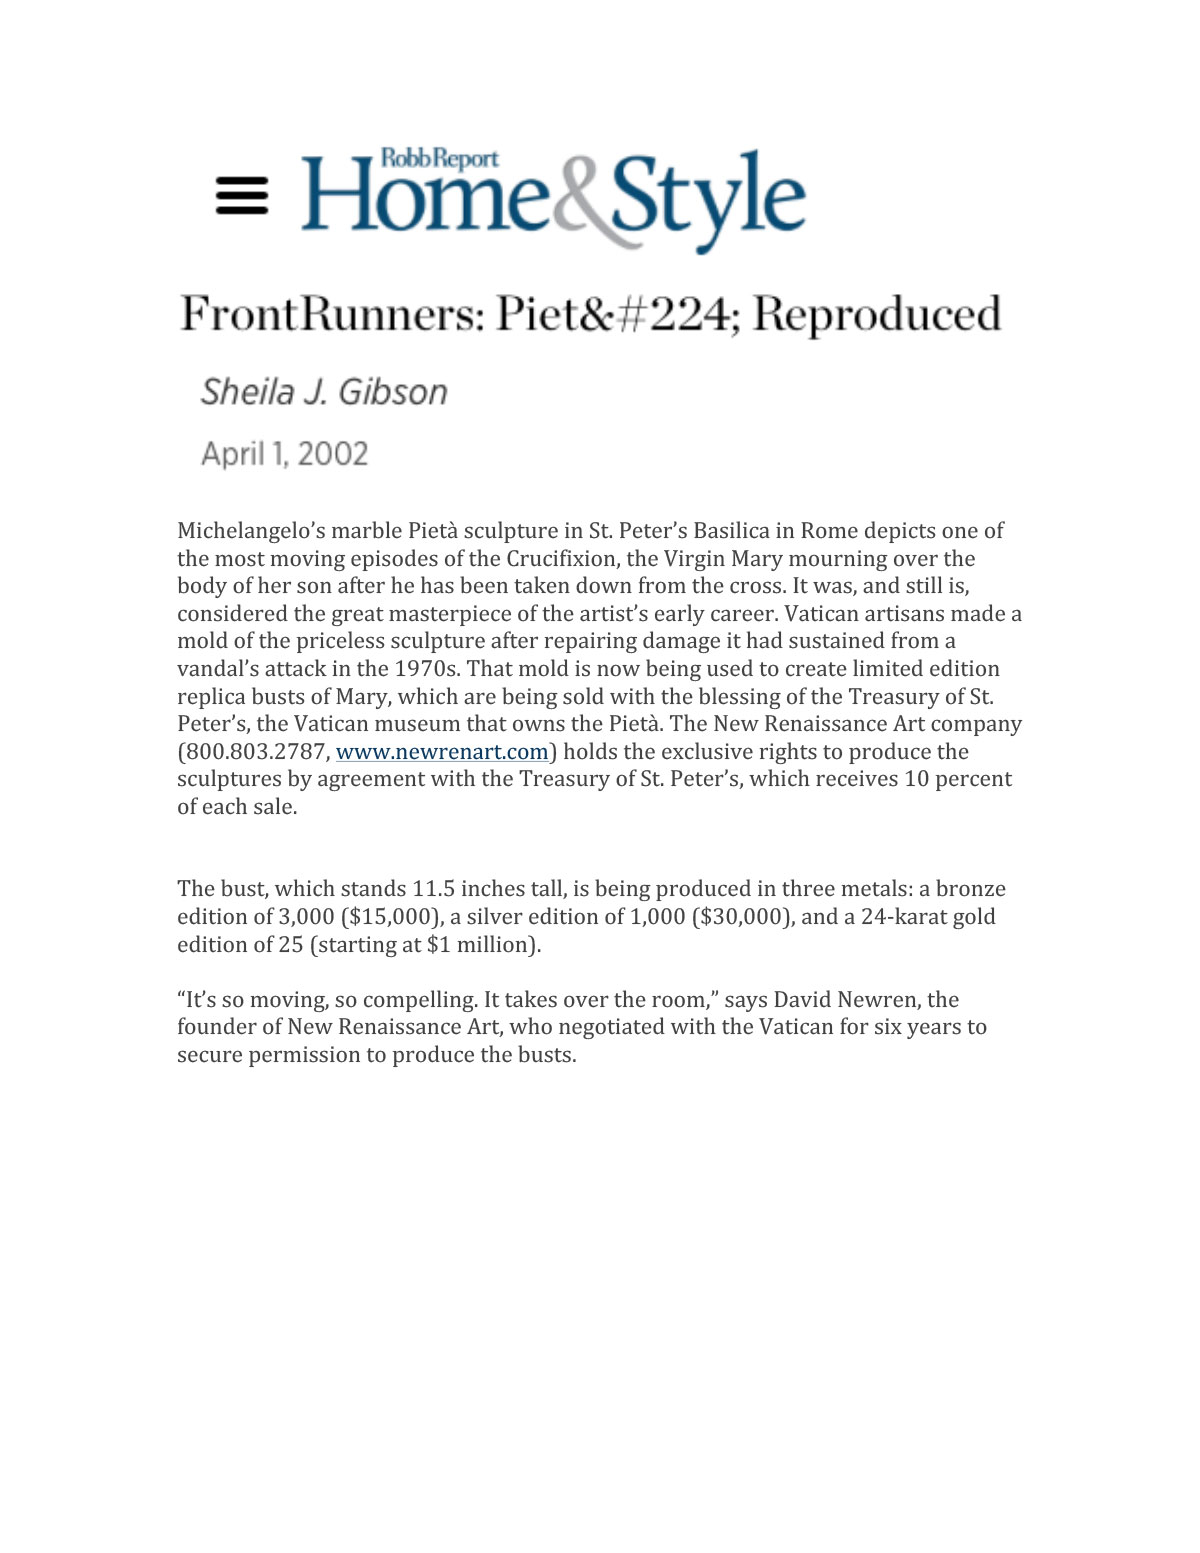 Home & Style Robb Report April 1, 2002